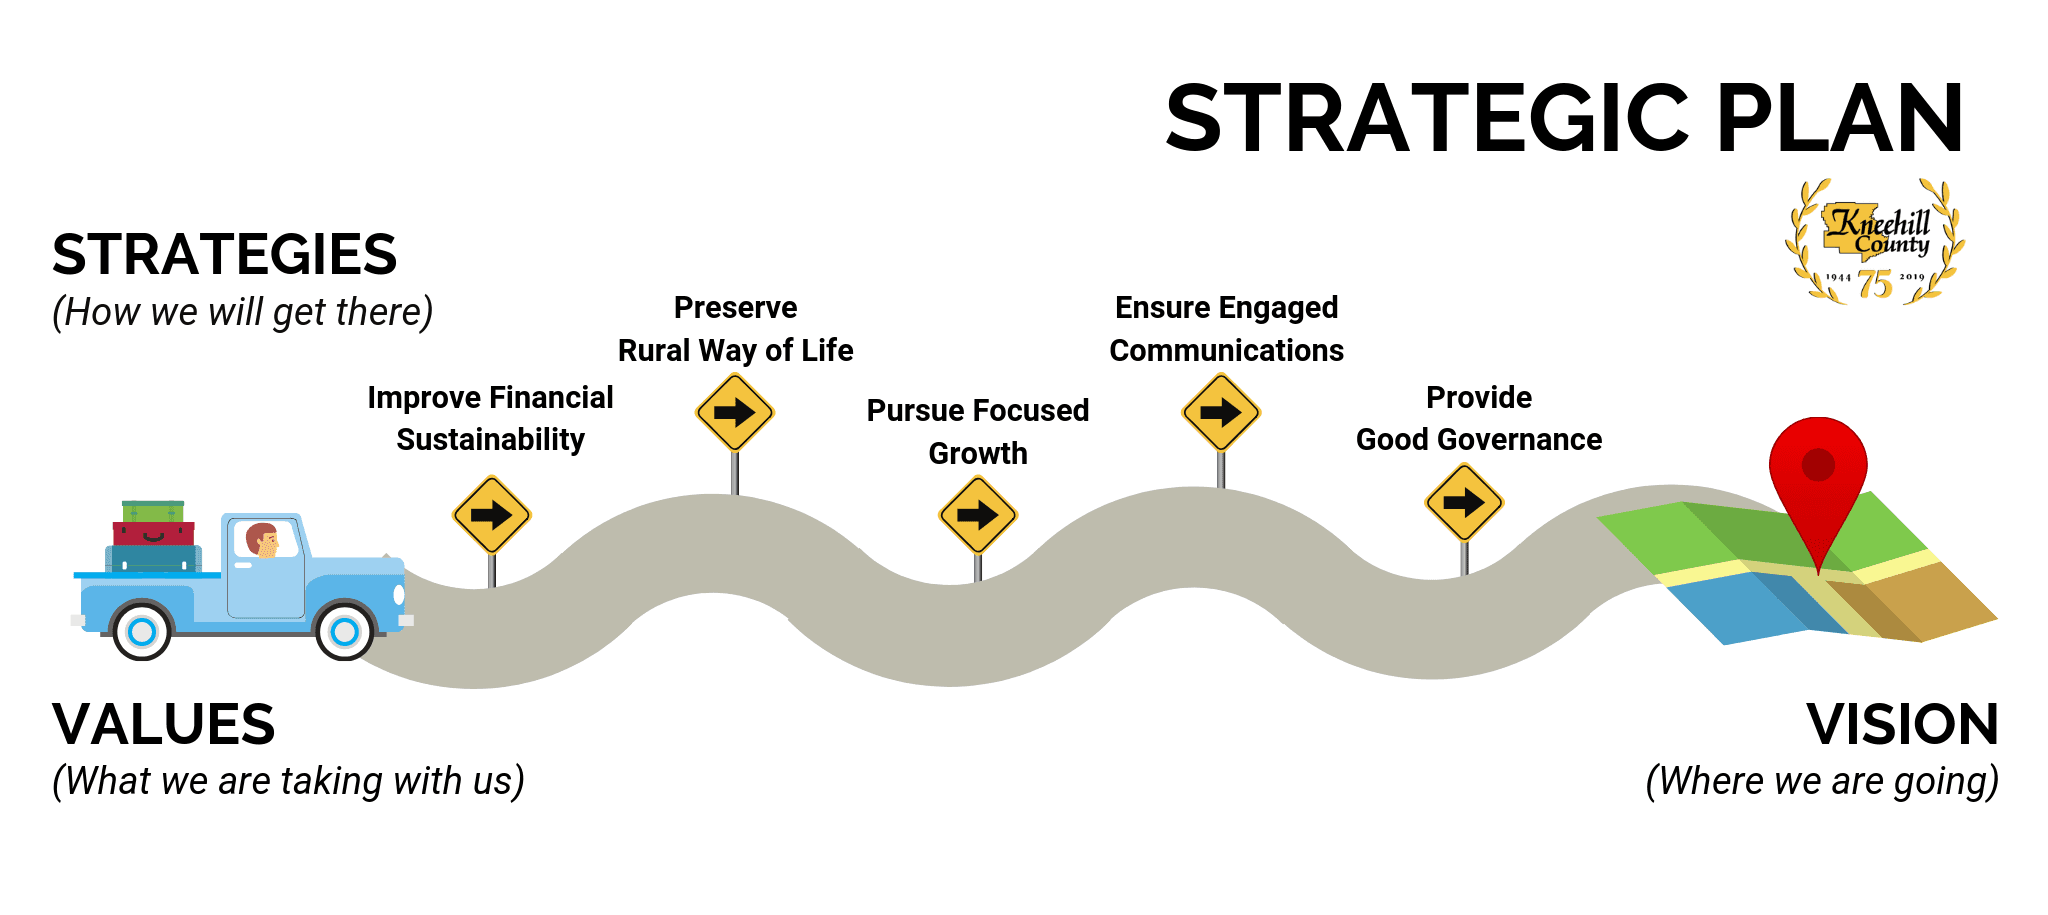 Copy of Strategic Plan no text